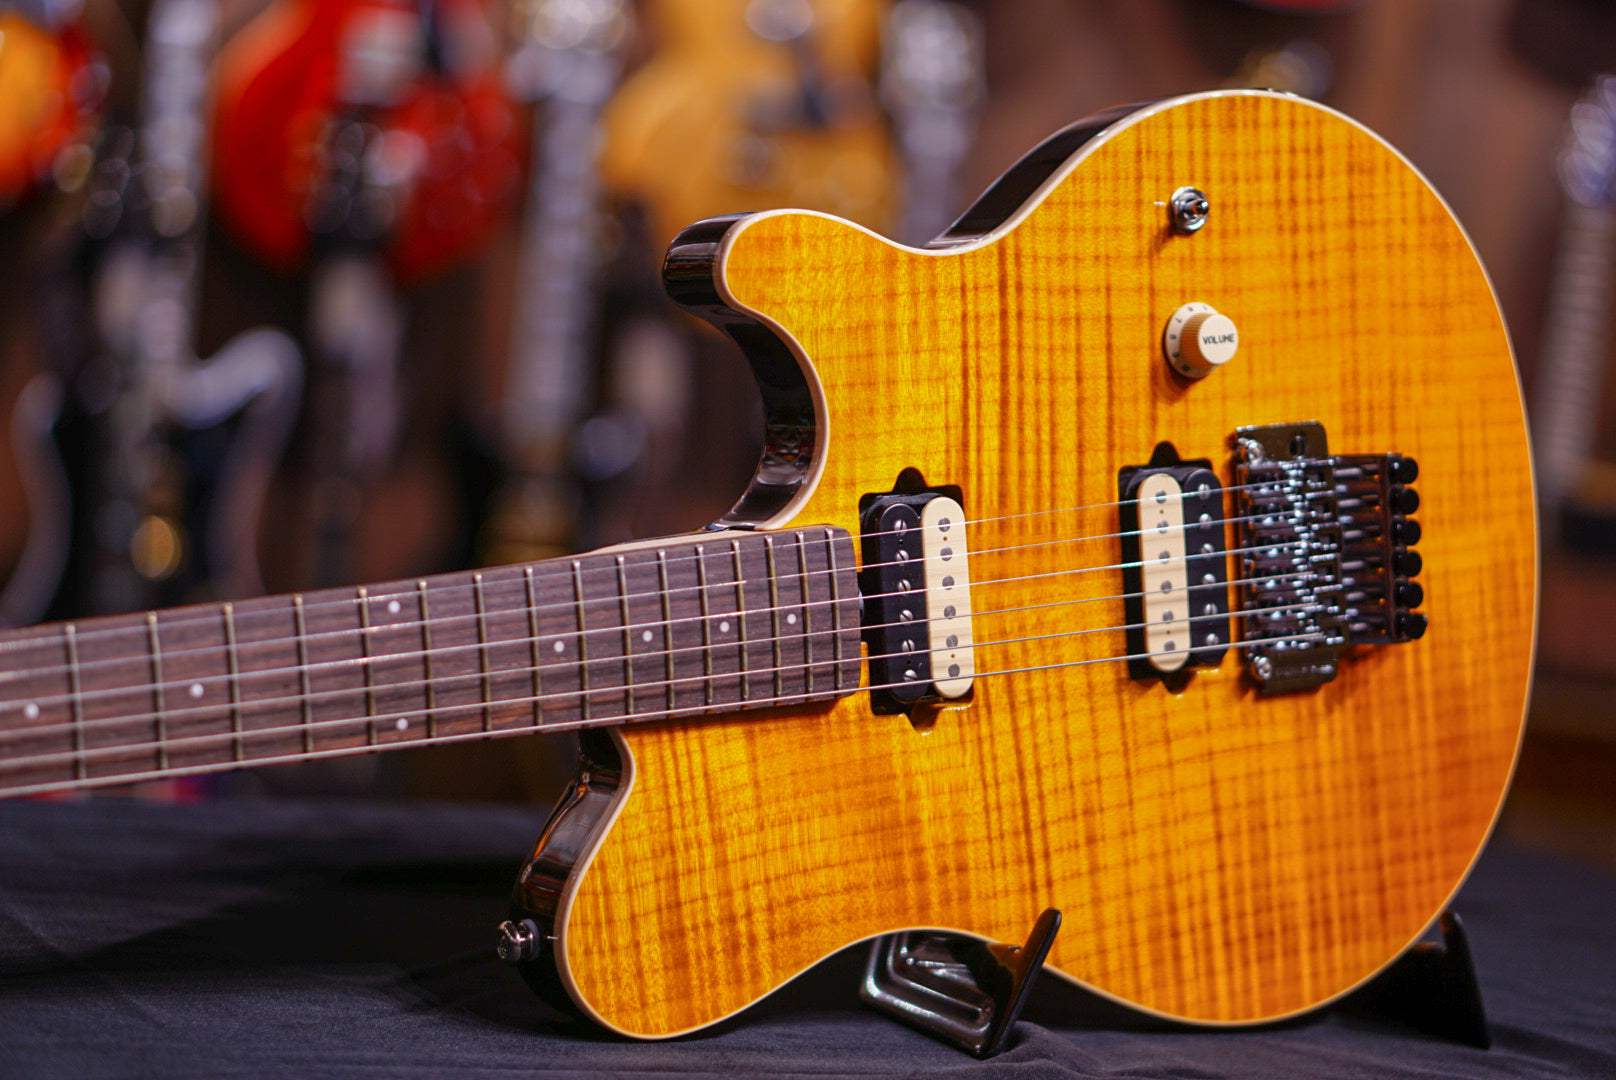 music man axis trans gold rosewood match head G84591 Musicman - HIENDGUITAR.COM